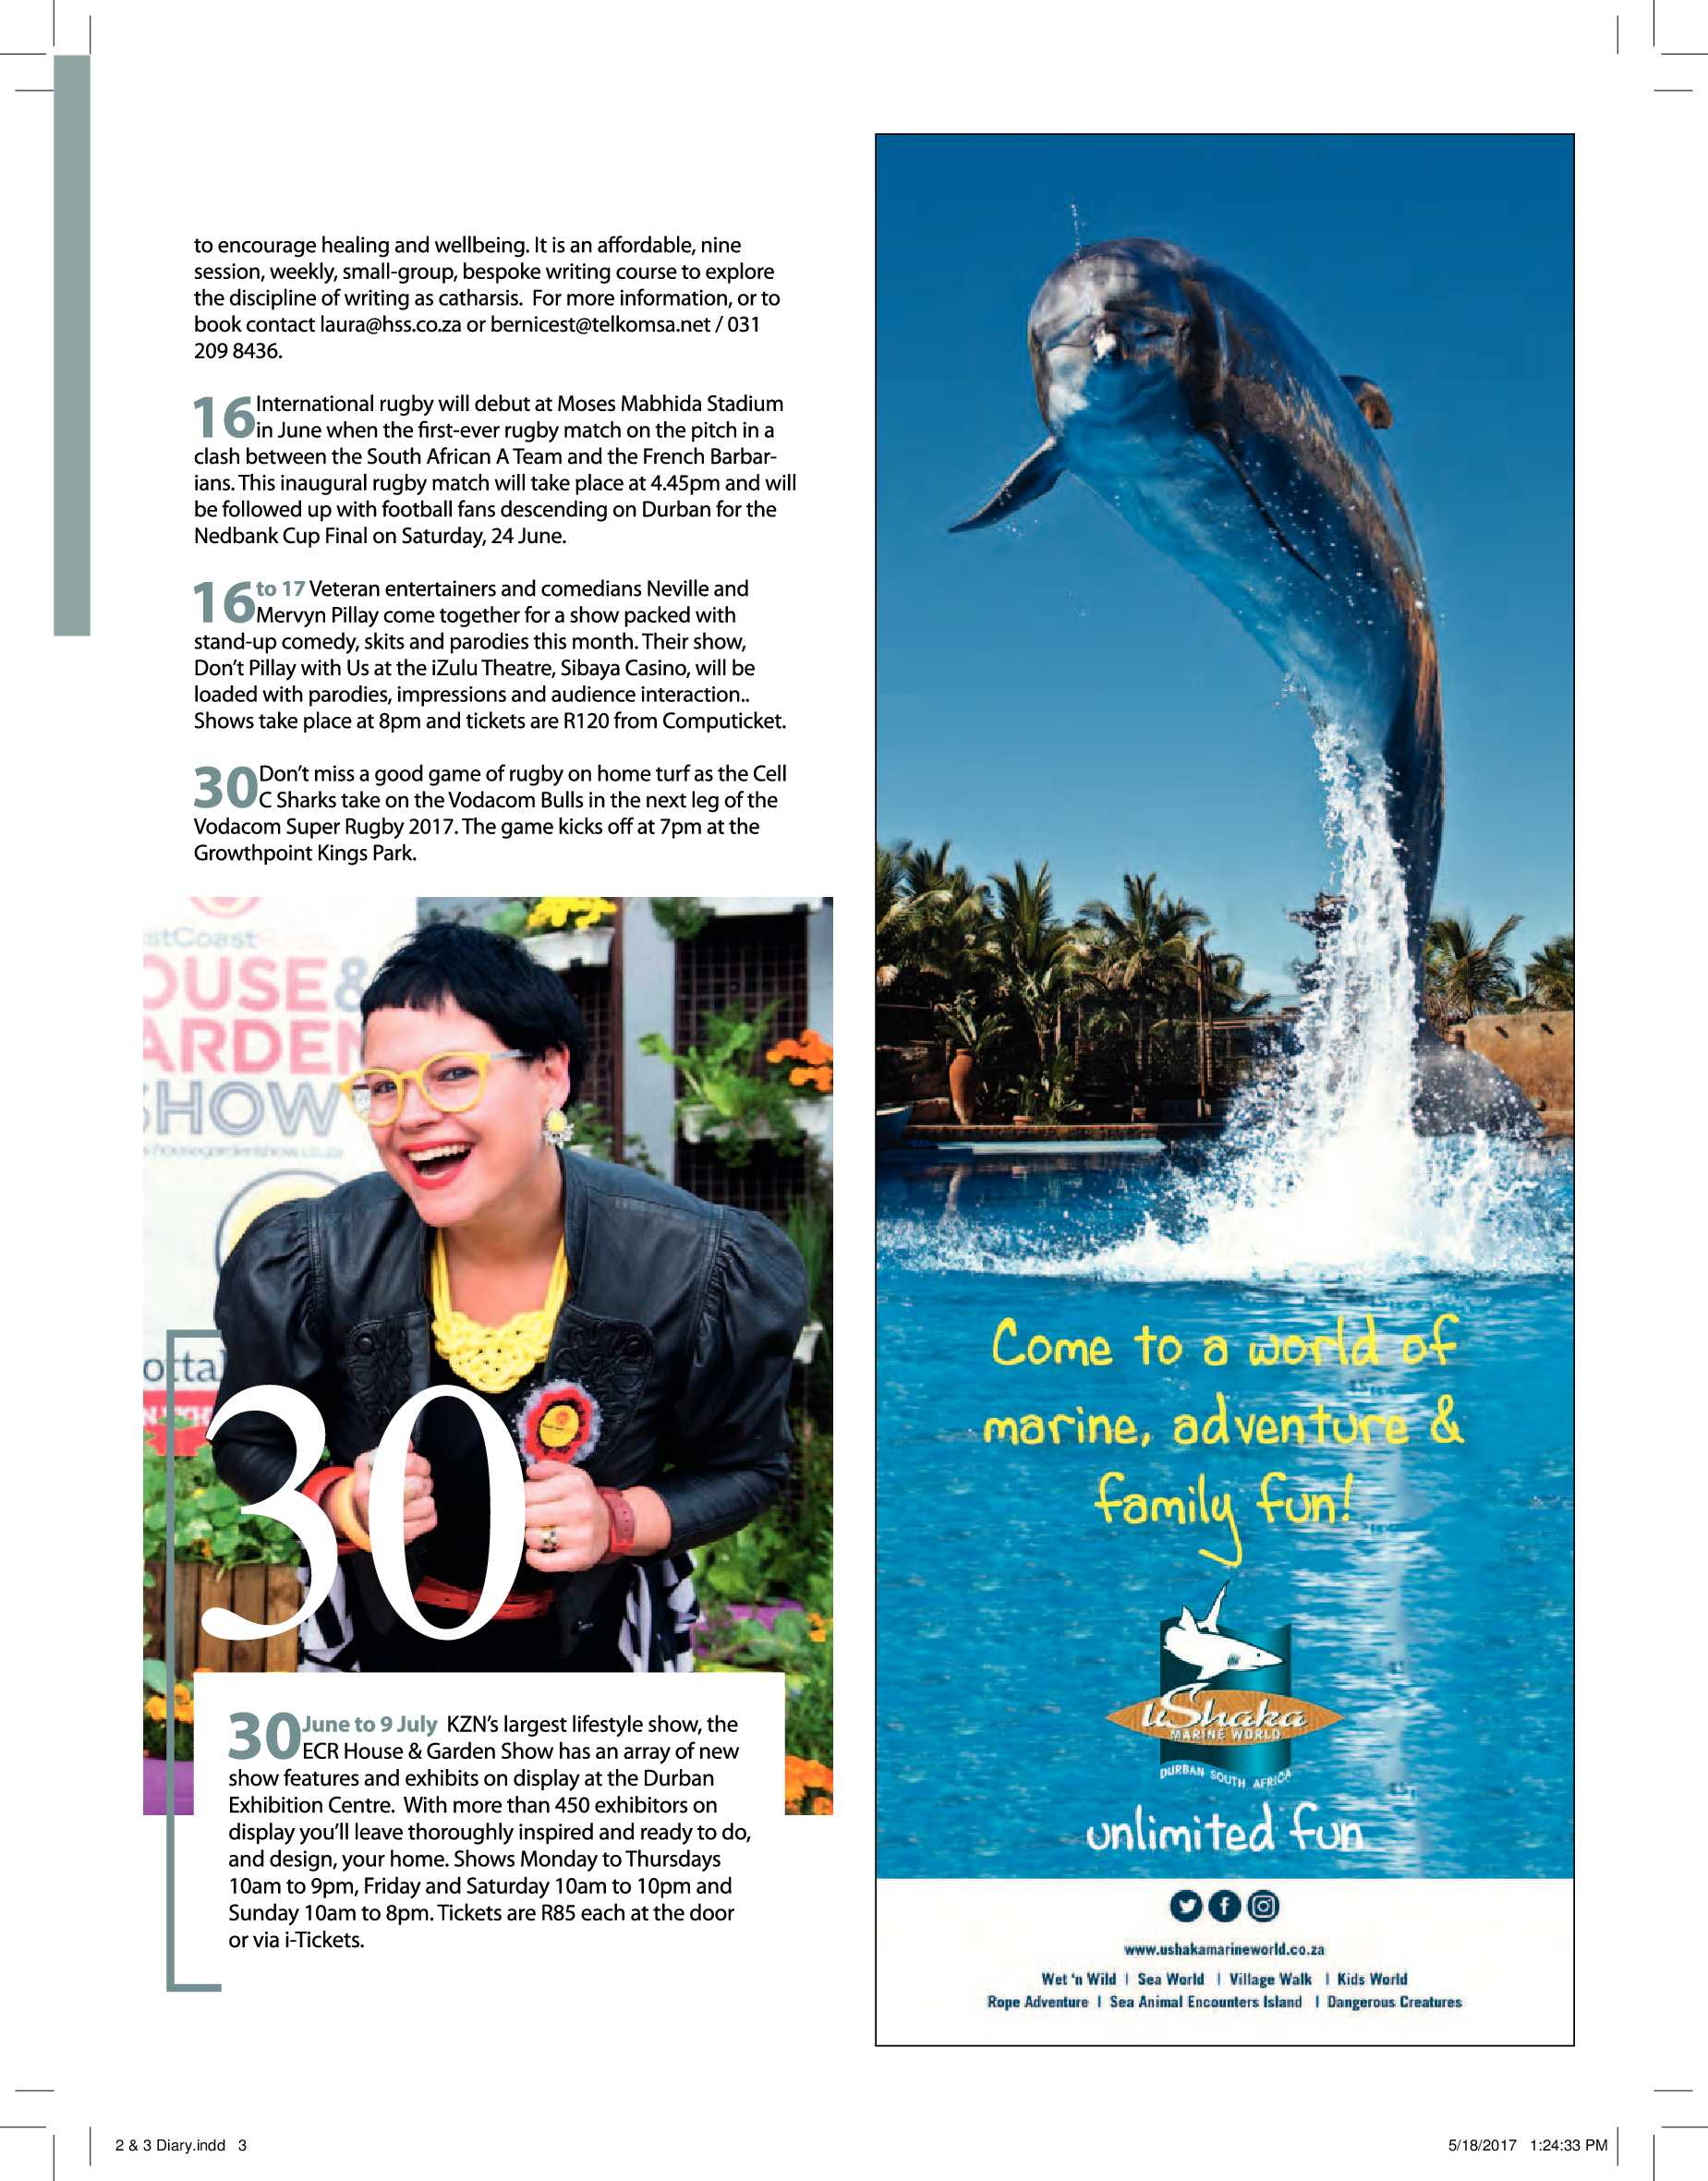 get-magazine-june-2017-epapers-page-5